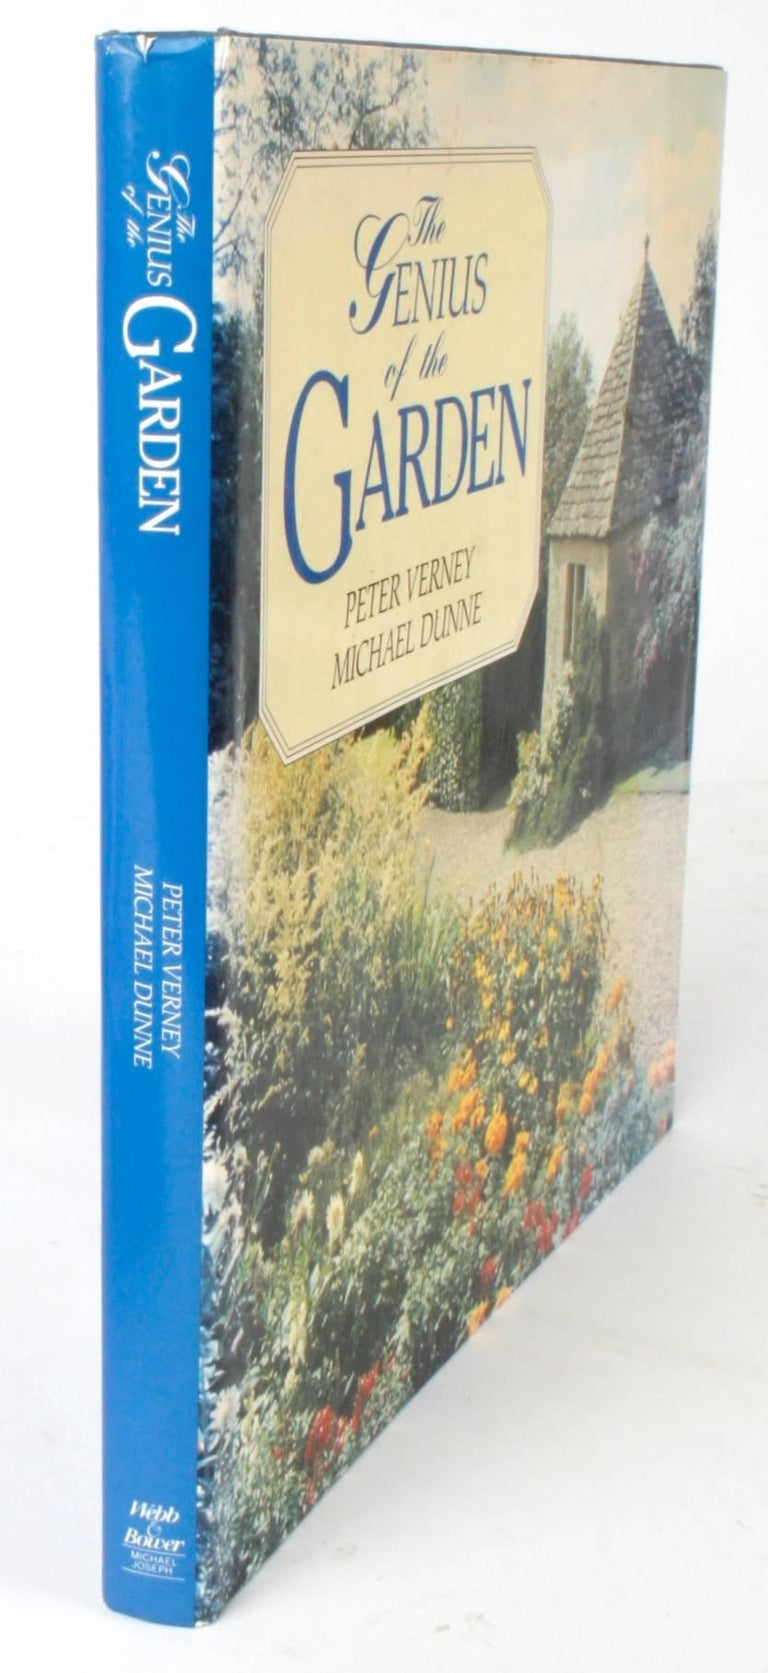 The Genius of the Garden by Peter Verney and Michael Dunne, 1st Edition For Sale 13